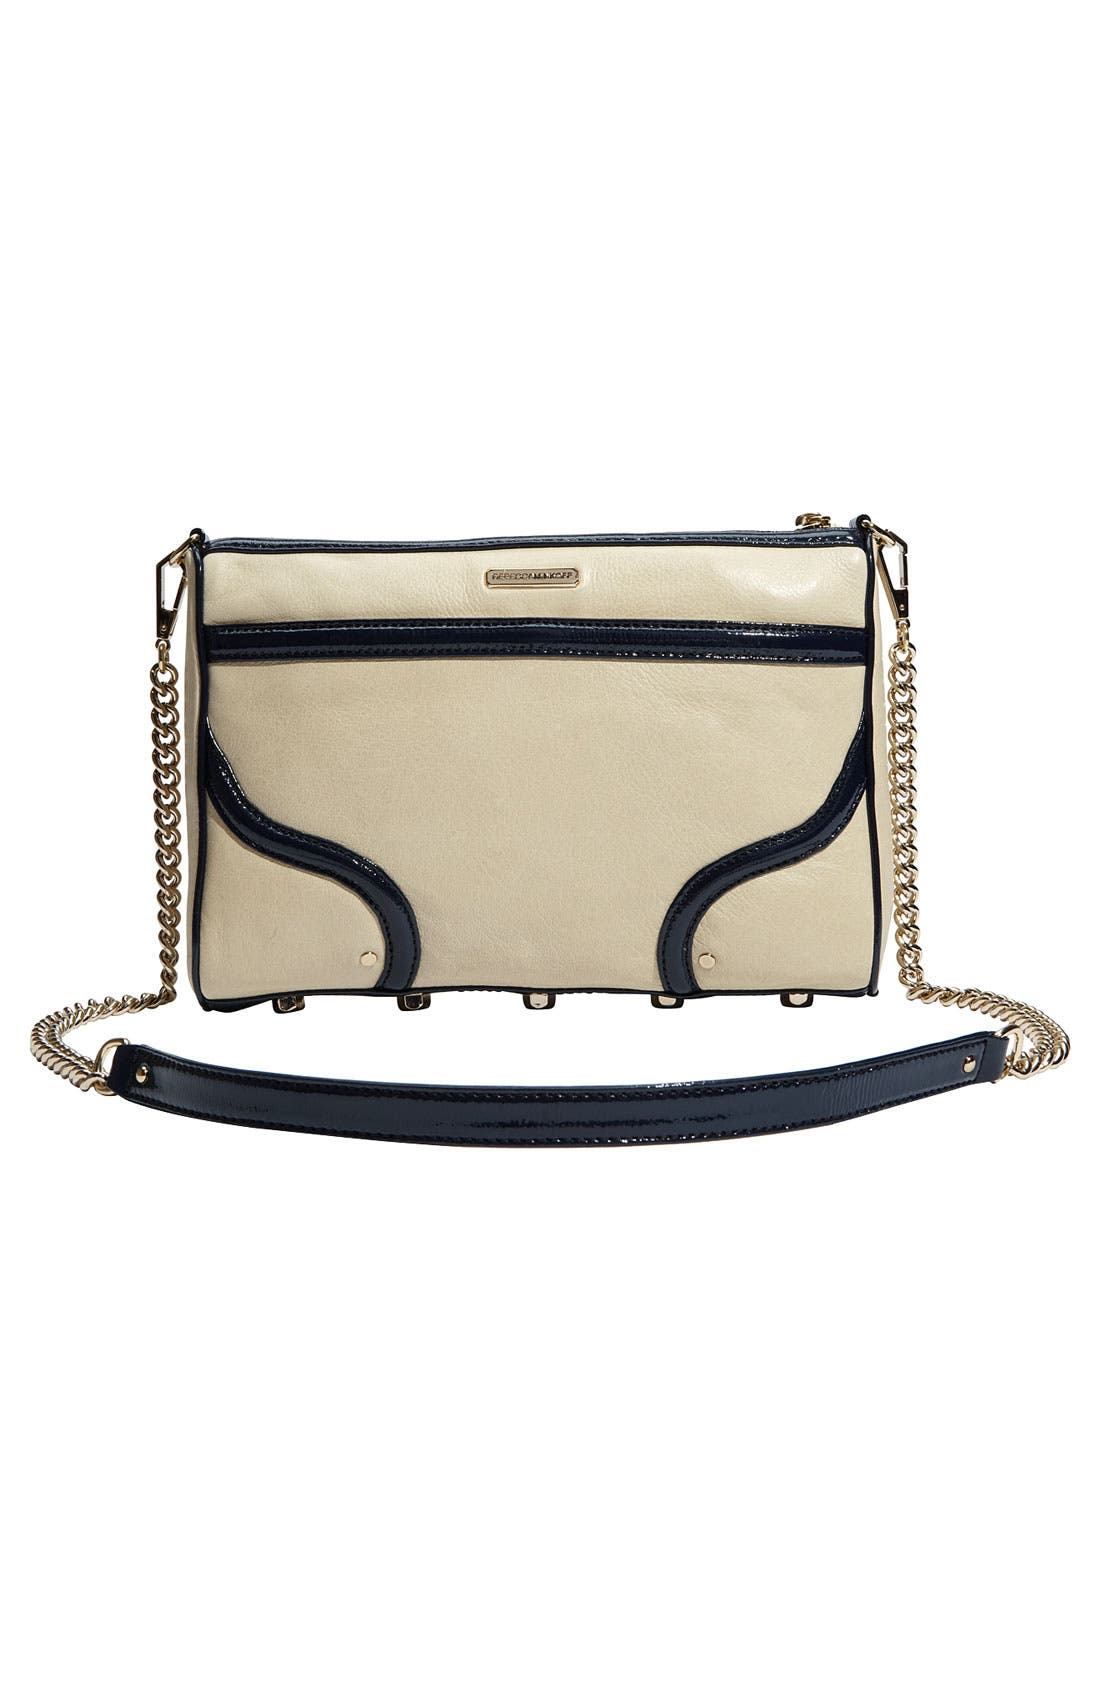 'Bombe MAC' Leather Crossbody Clutch,                             Alternate thumbnail 4, color,                             Ivory W/ Navy Trim